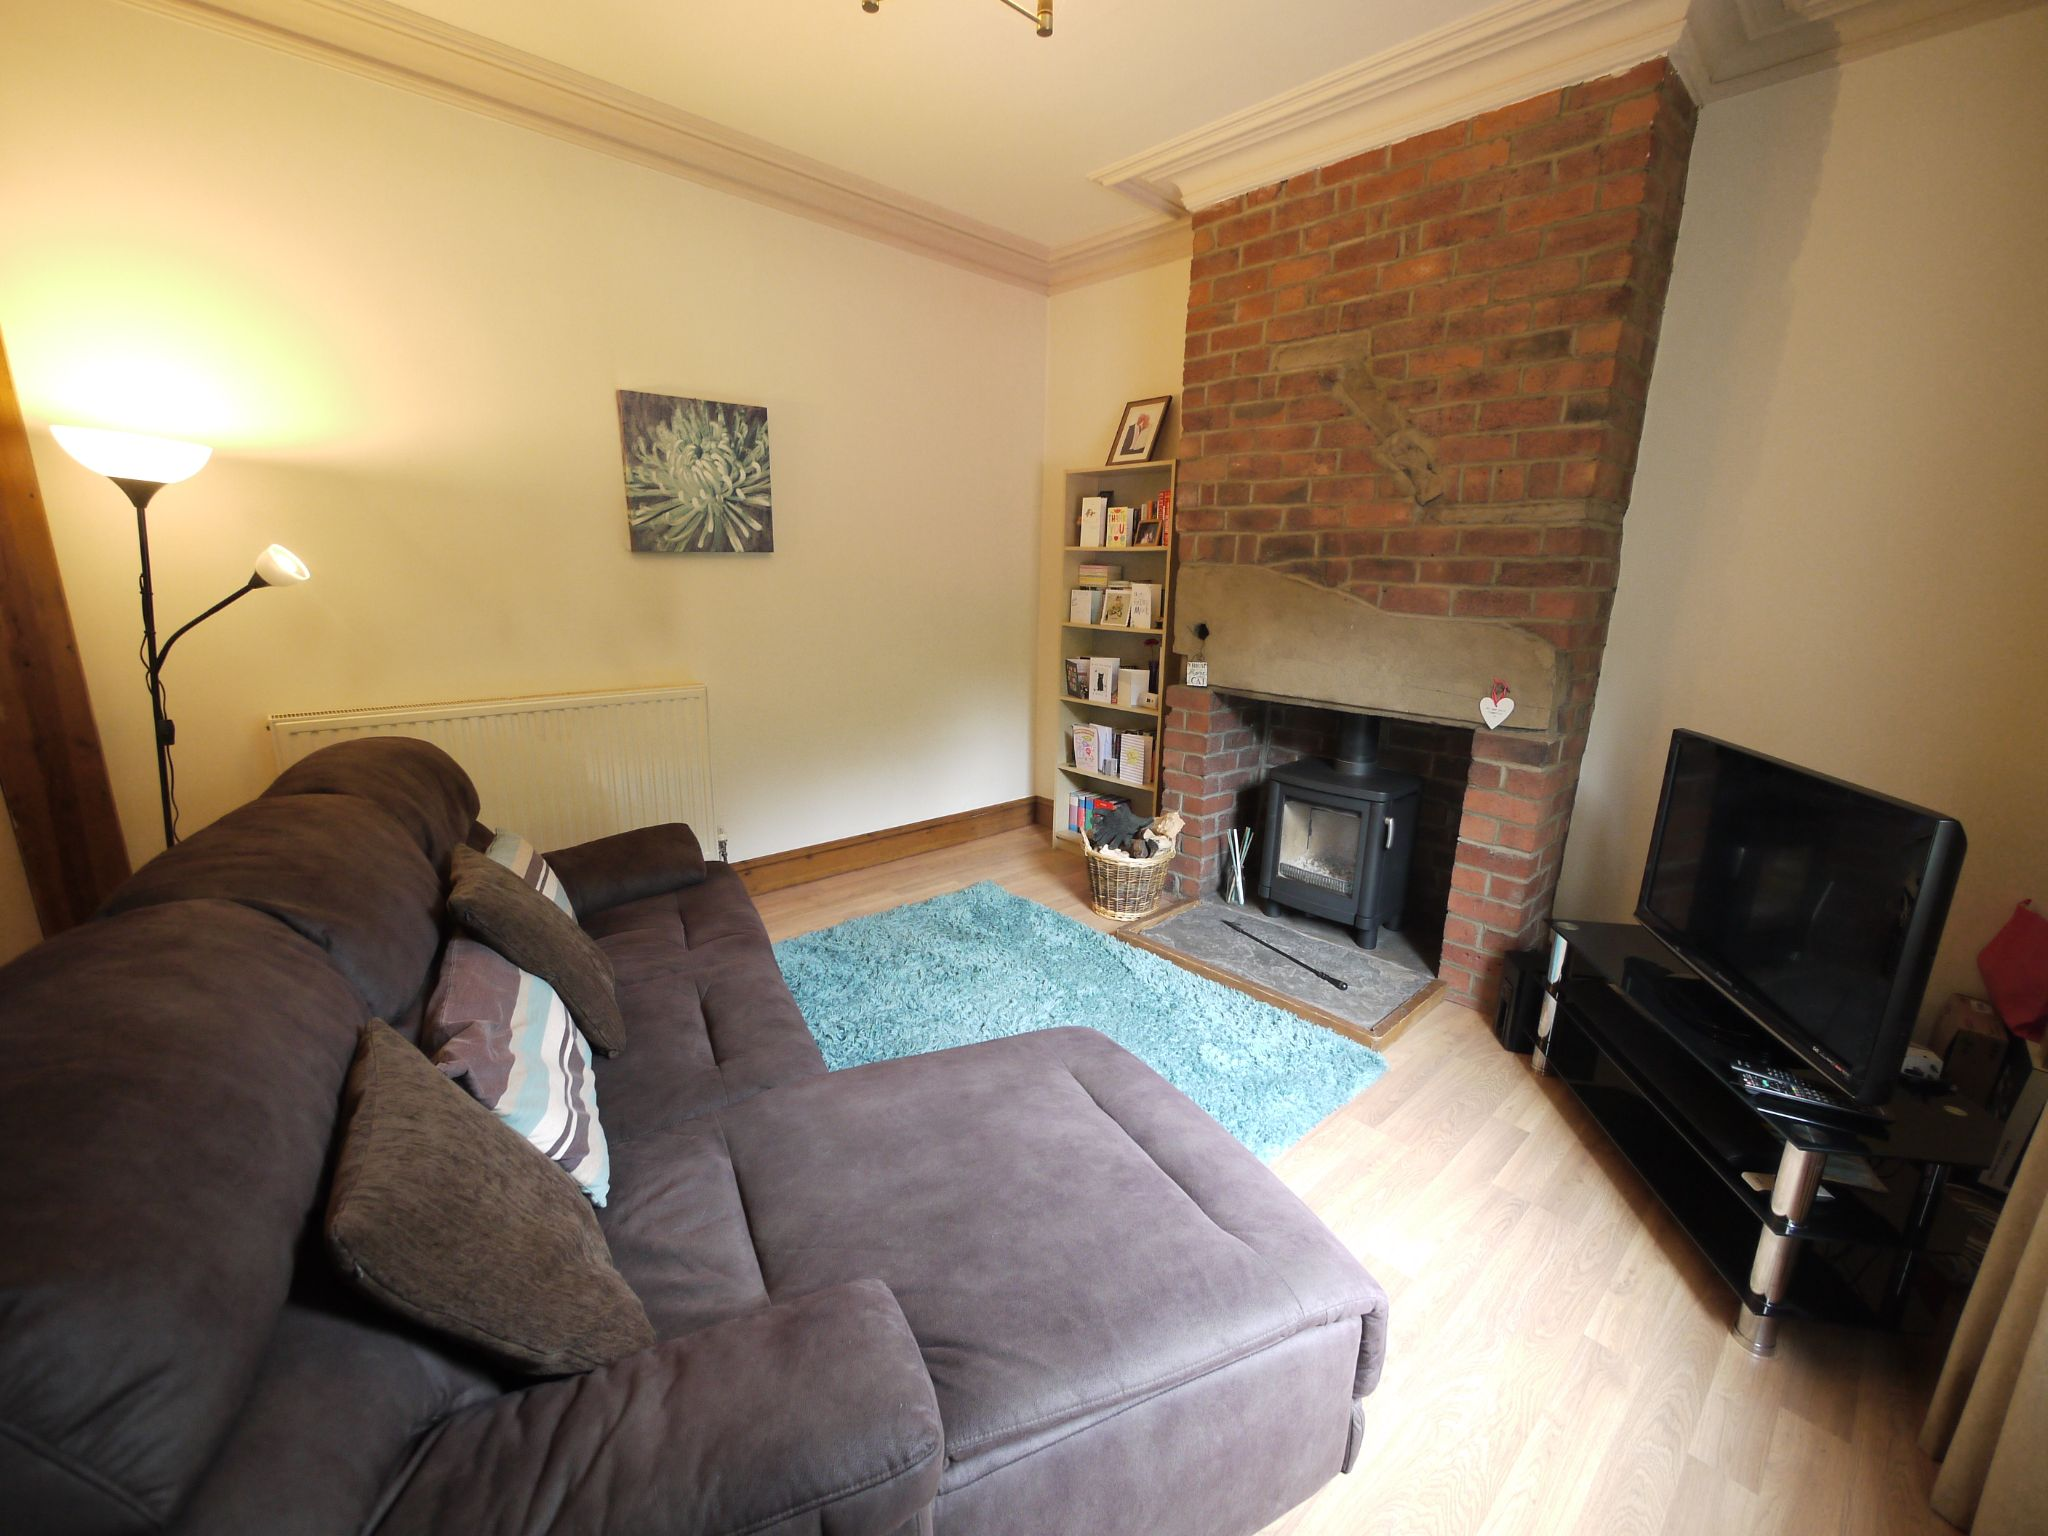 2 bedroom end terraced house SSTC in Brighouse - Lounge.